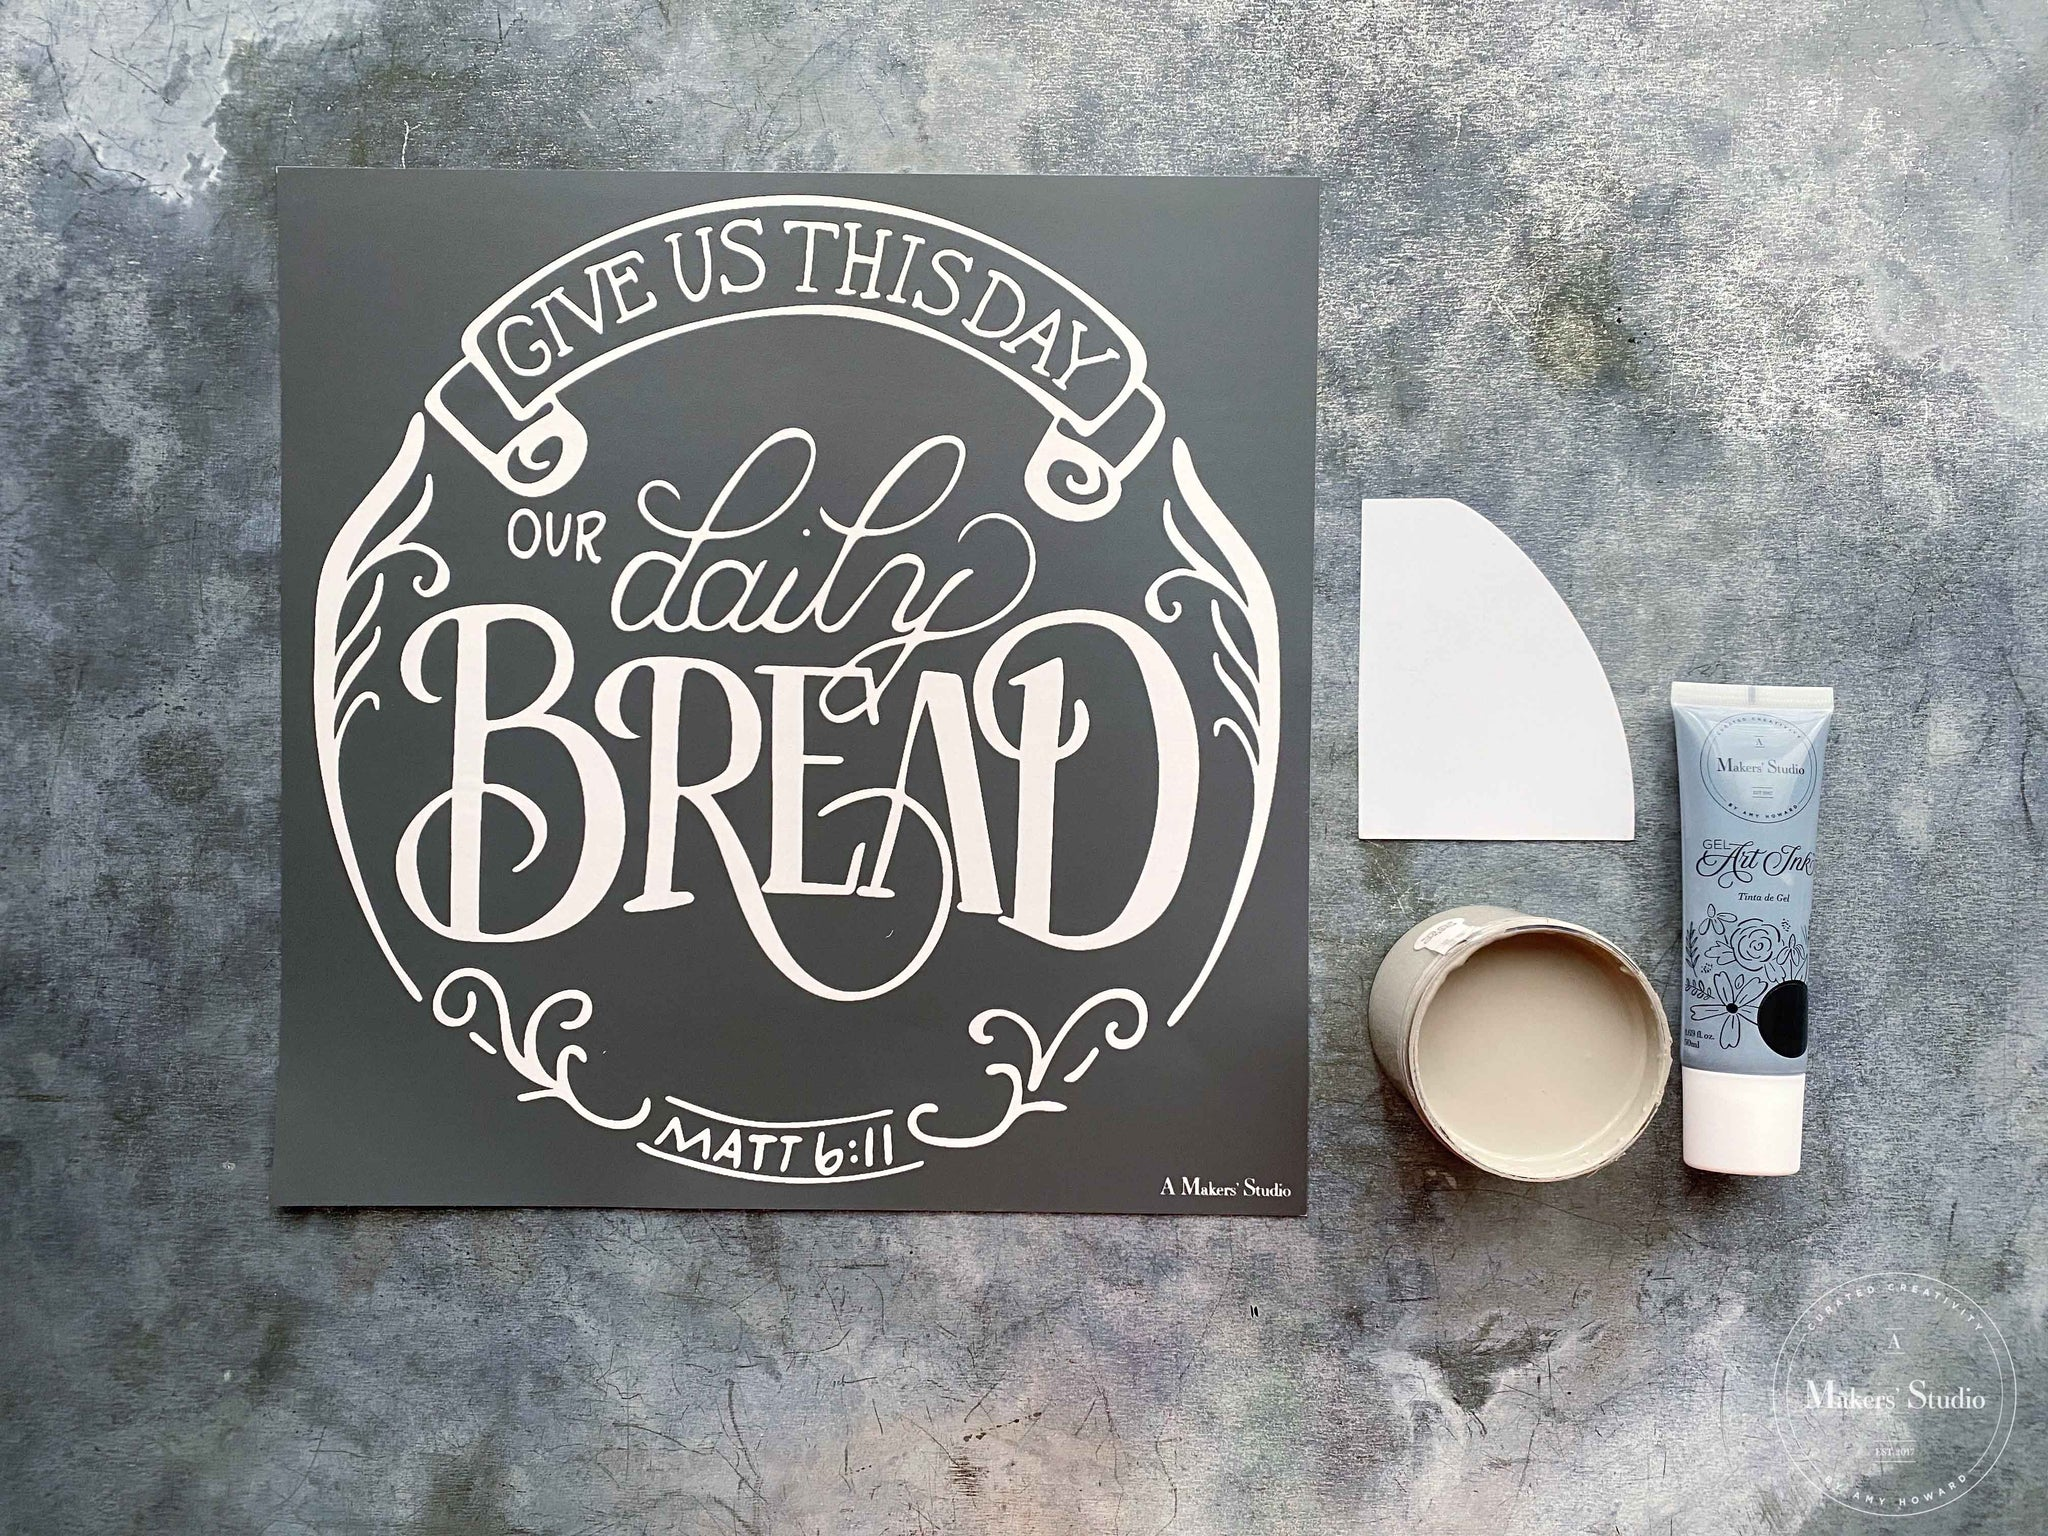 Daily Bread Wall Hanging Project